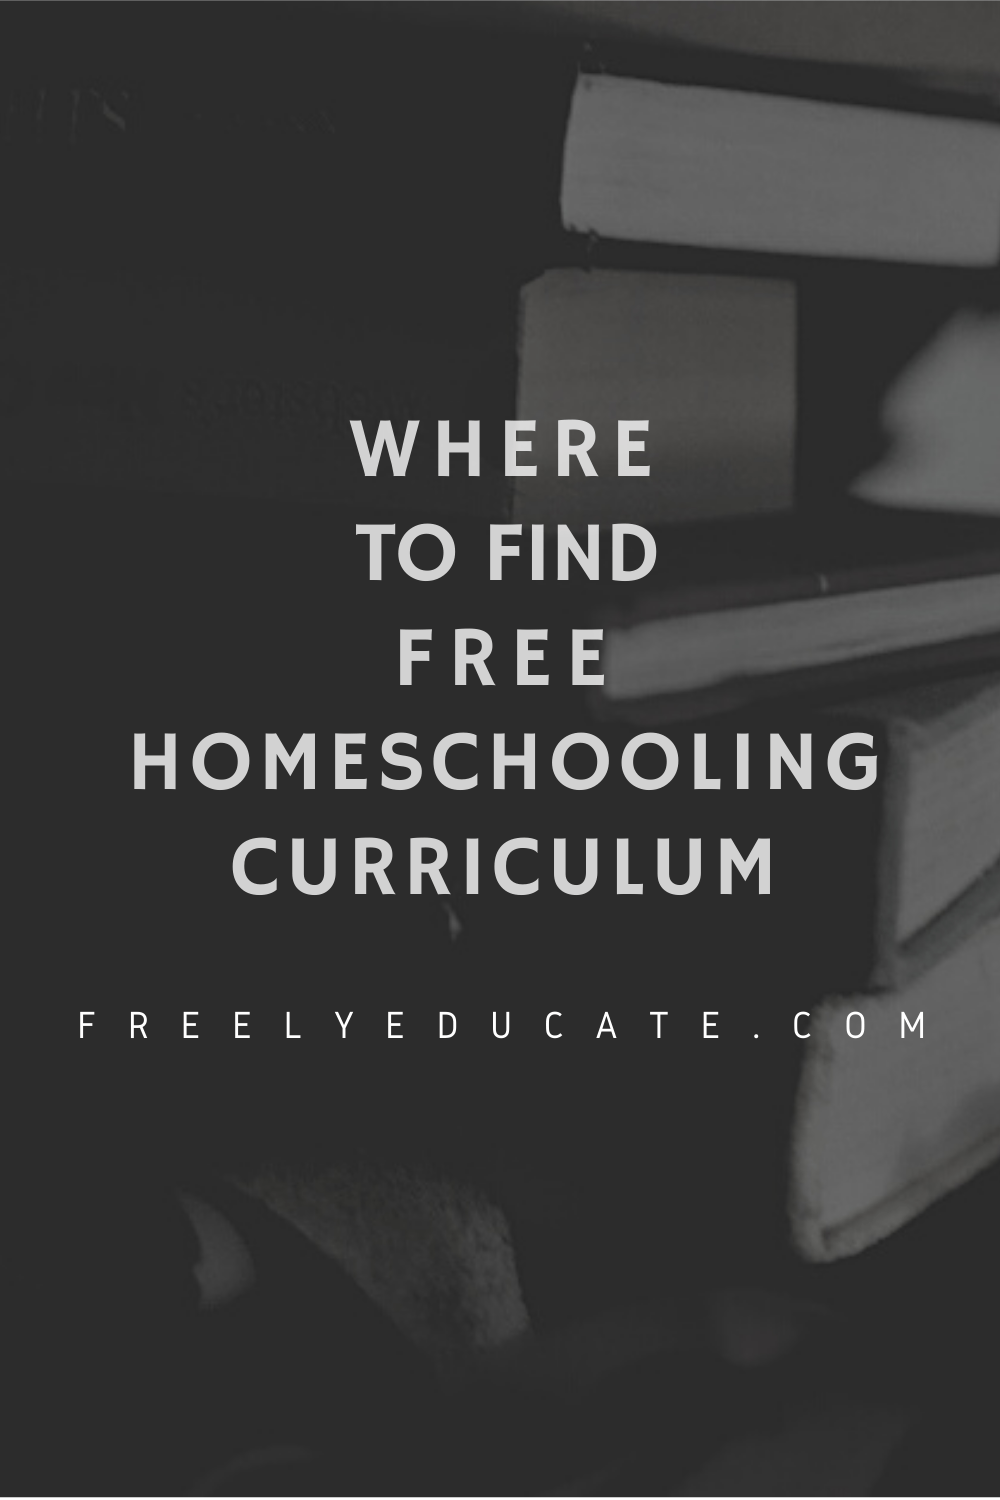 Where to Find Free Homeschool Curriculum